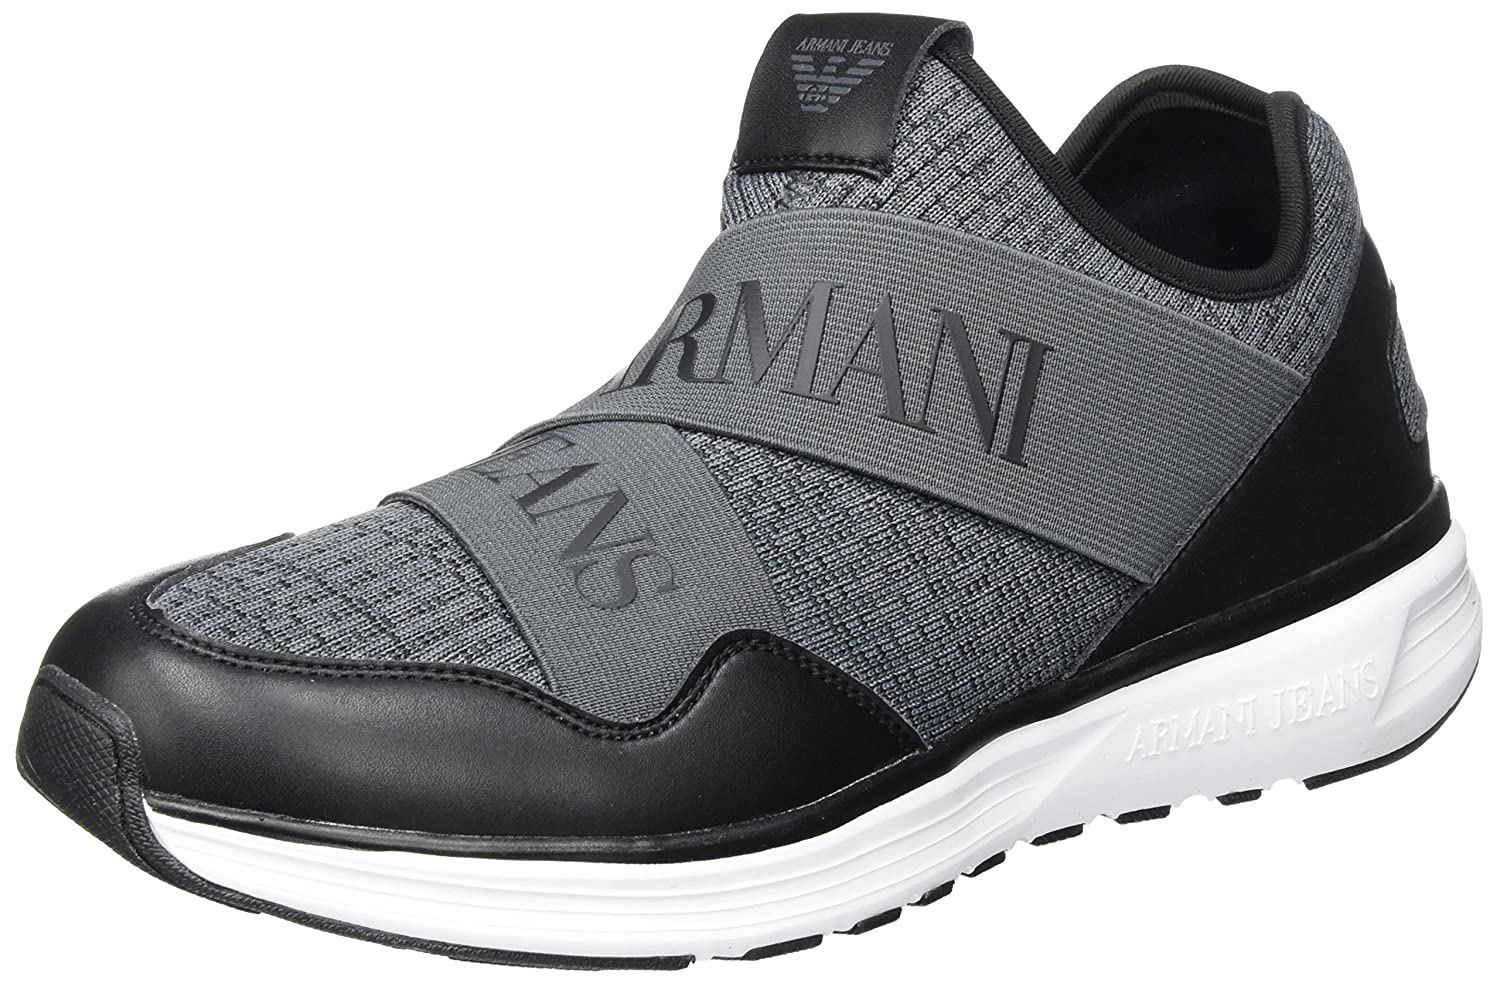 ARMANI JEANS Men's Knit Sneaker with Logo Elastic Band 9350607A406